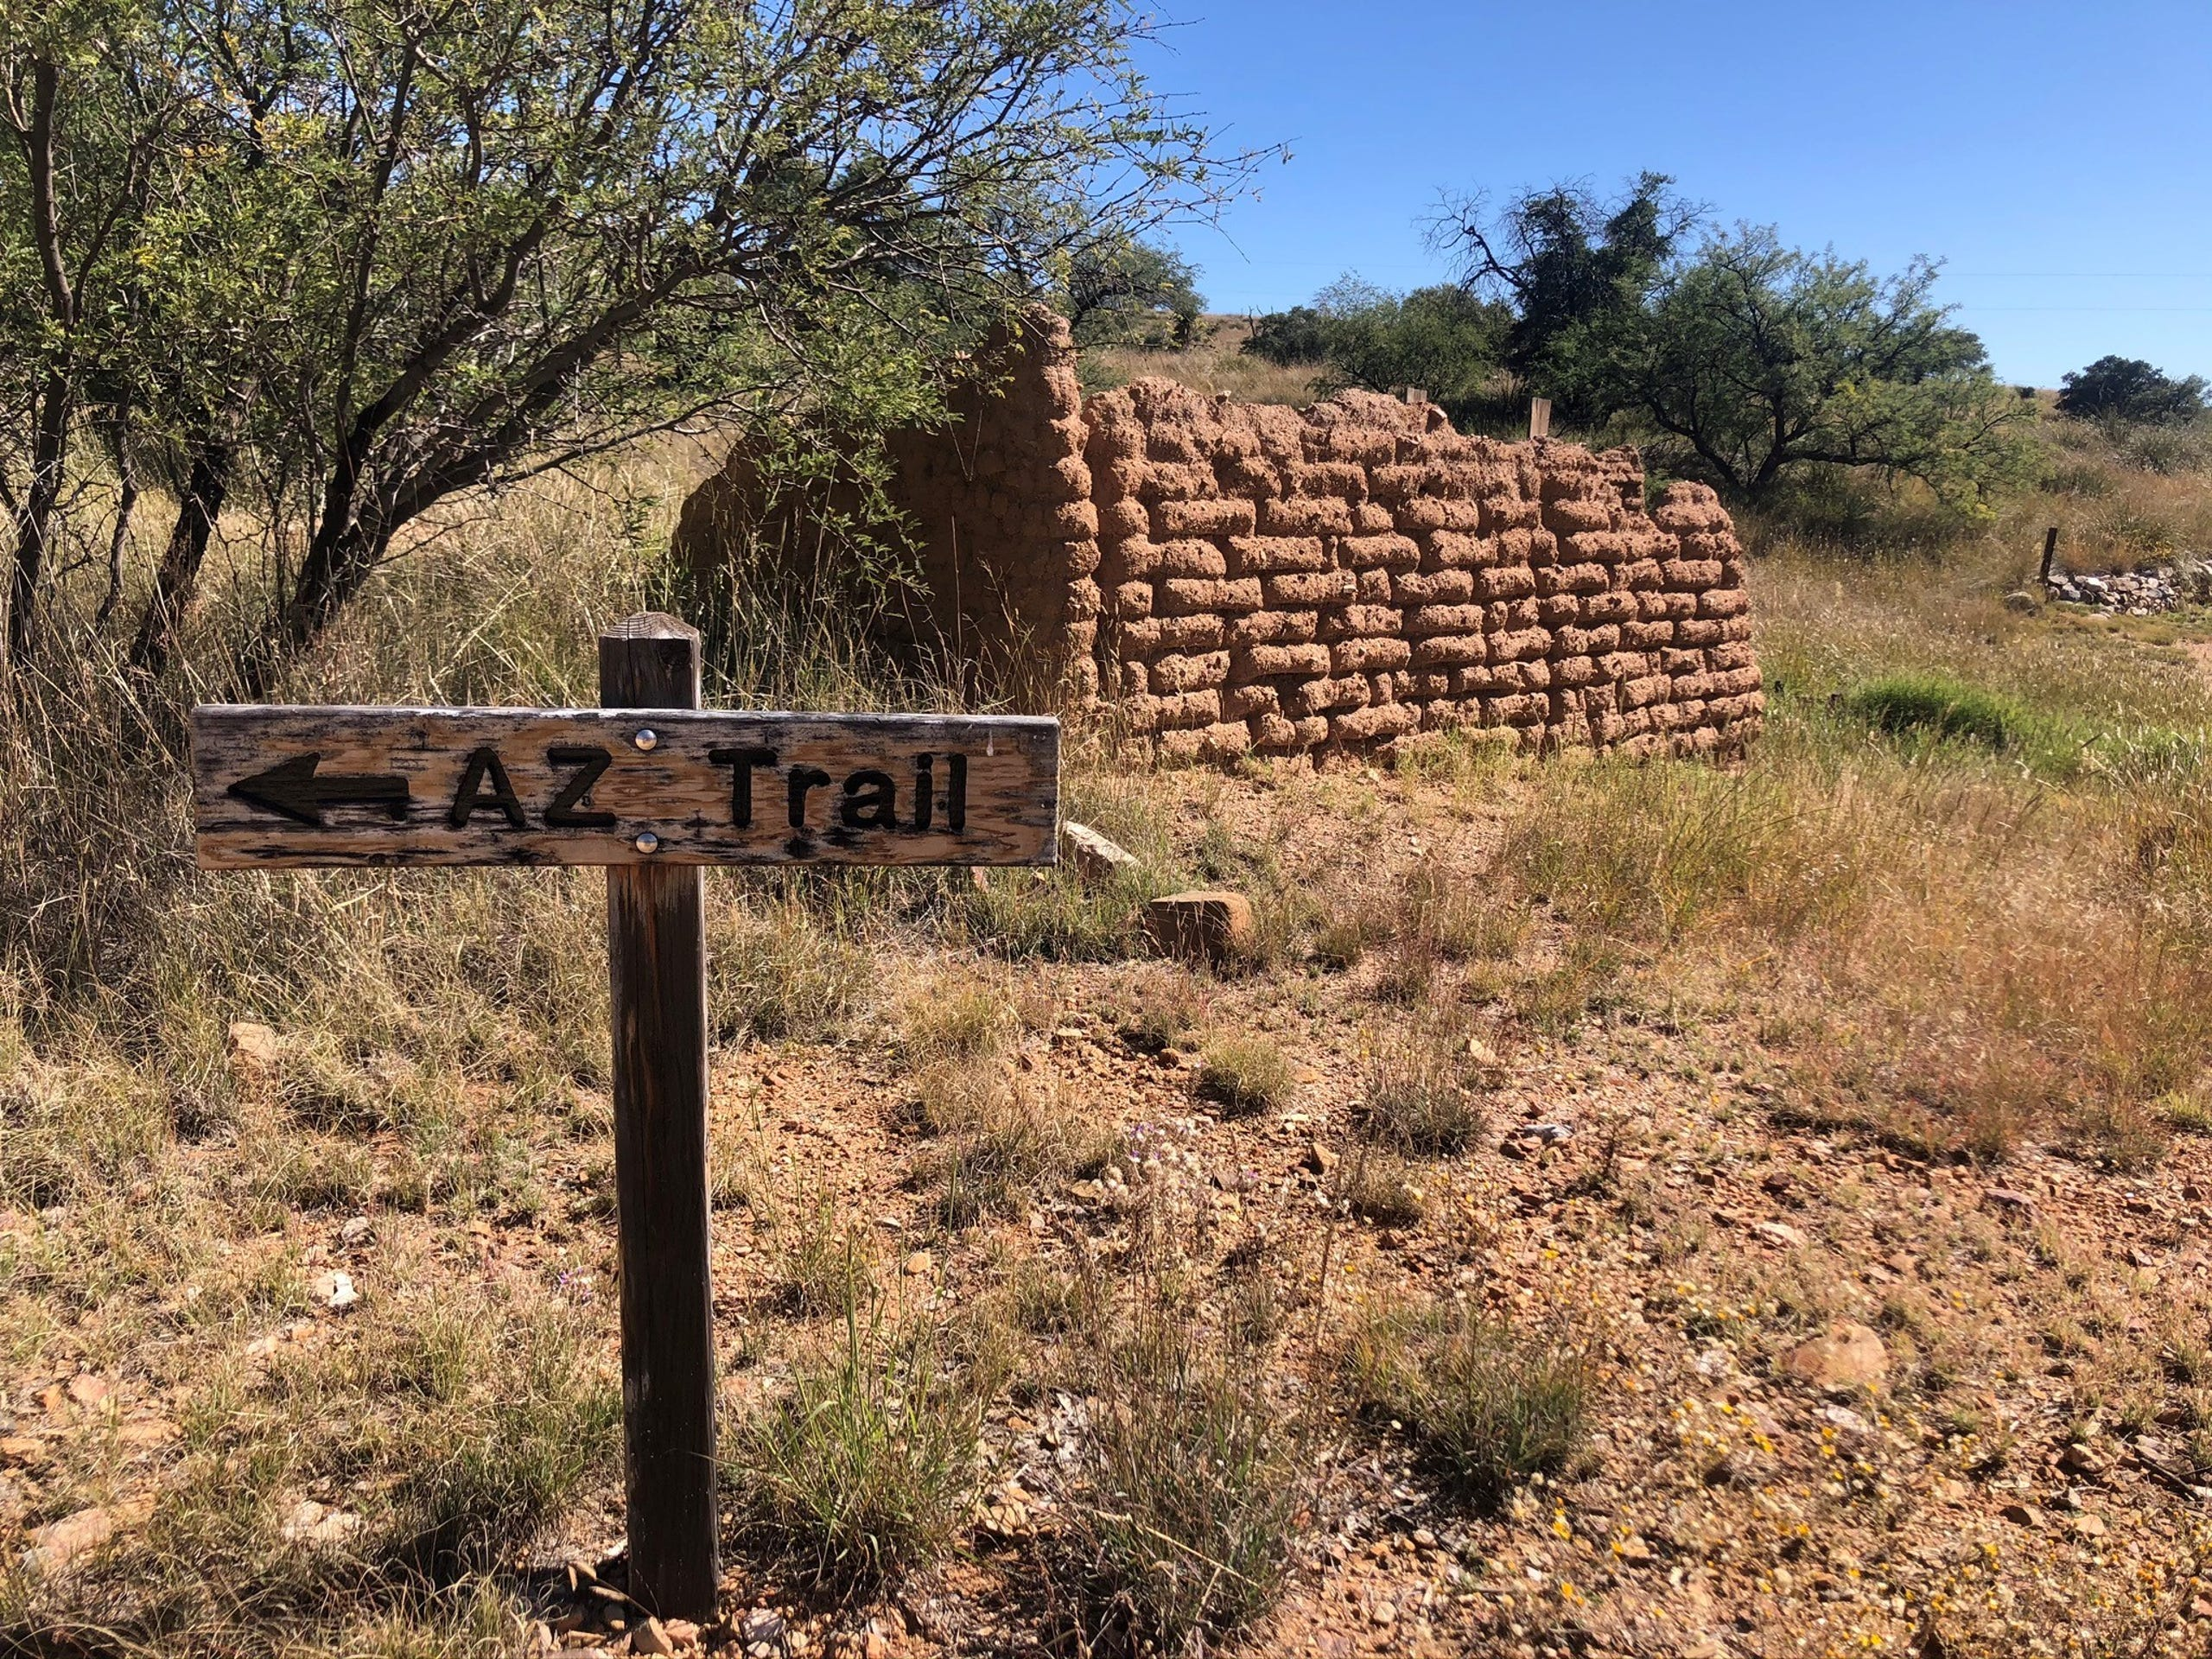 The 800-mile-long Arizona National Scenic Trail is routed through Kentucky Camp ghost town in southern Arizona.